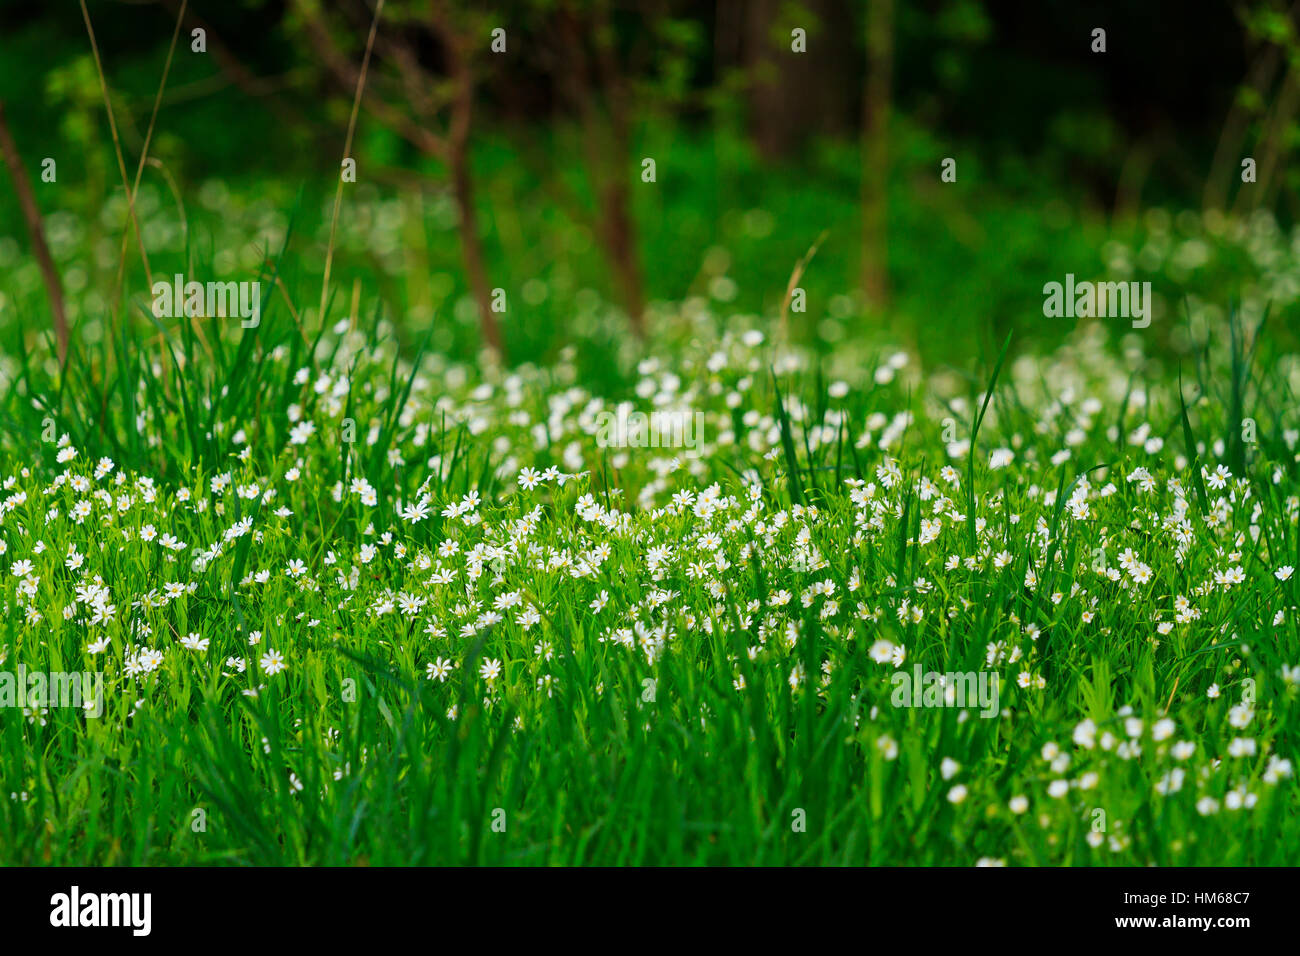 First Spring White Flowers Among Lush Green Grass Stock Photo